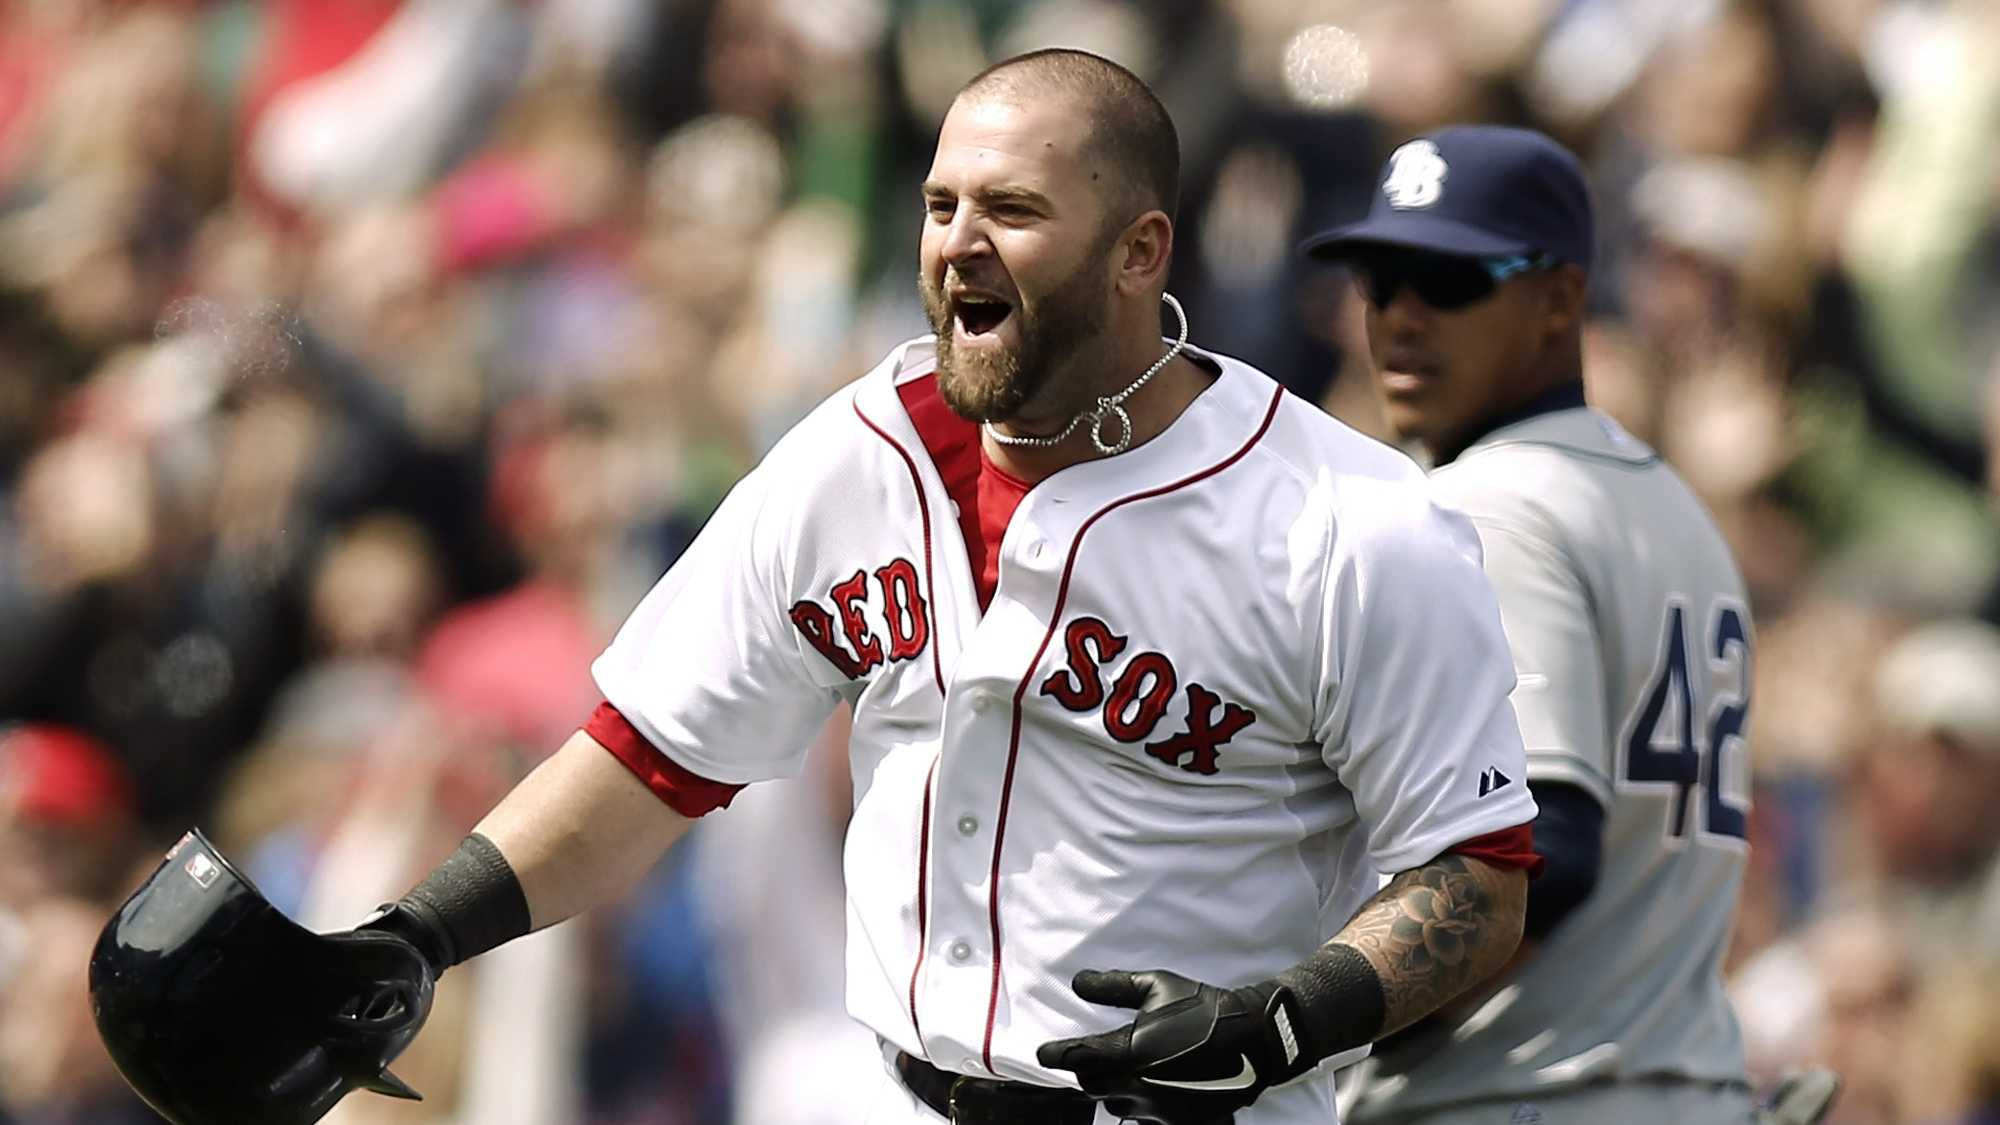 Boston Red Sox's Mike Napoli celebrates after his game-winning double as Tampa Bay Rays' Yunel Escobar watches during the ninth inning of a baseball game at Fenway Park in Boston on Monday, April 15, 2013. Boston won 3-2.